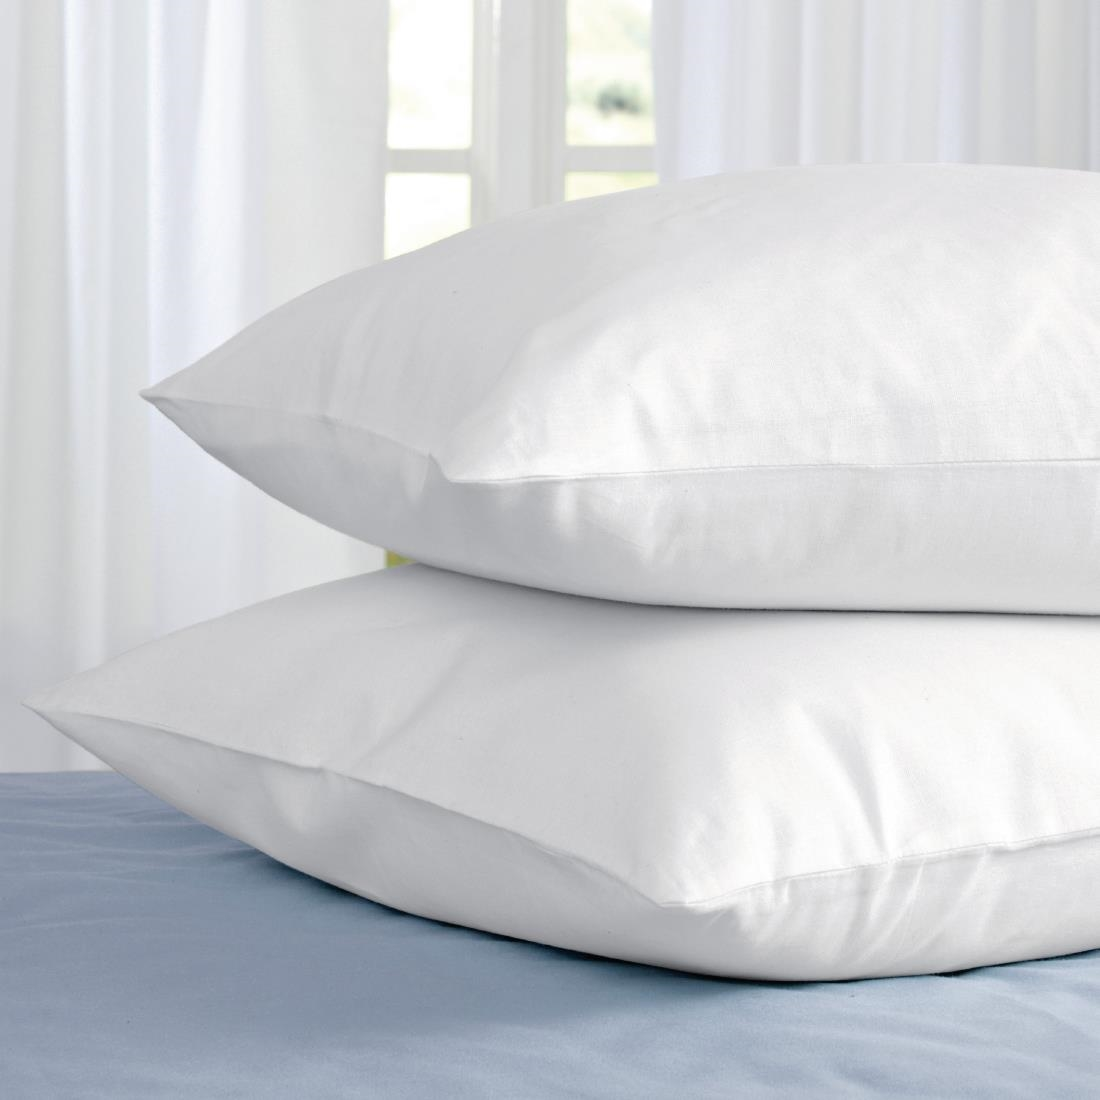 Image of Mitre Heritage Abbey Pillows Soft